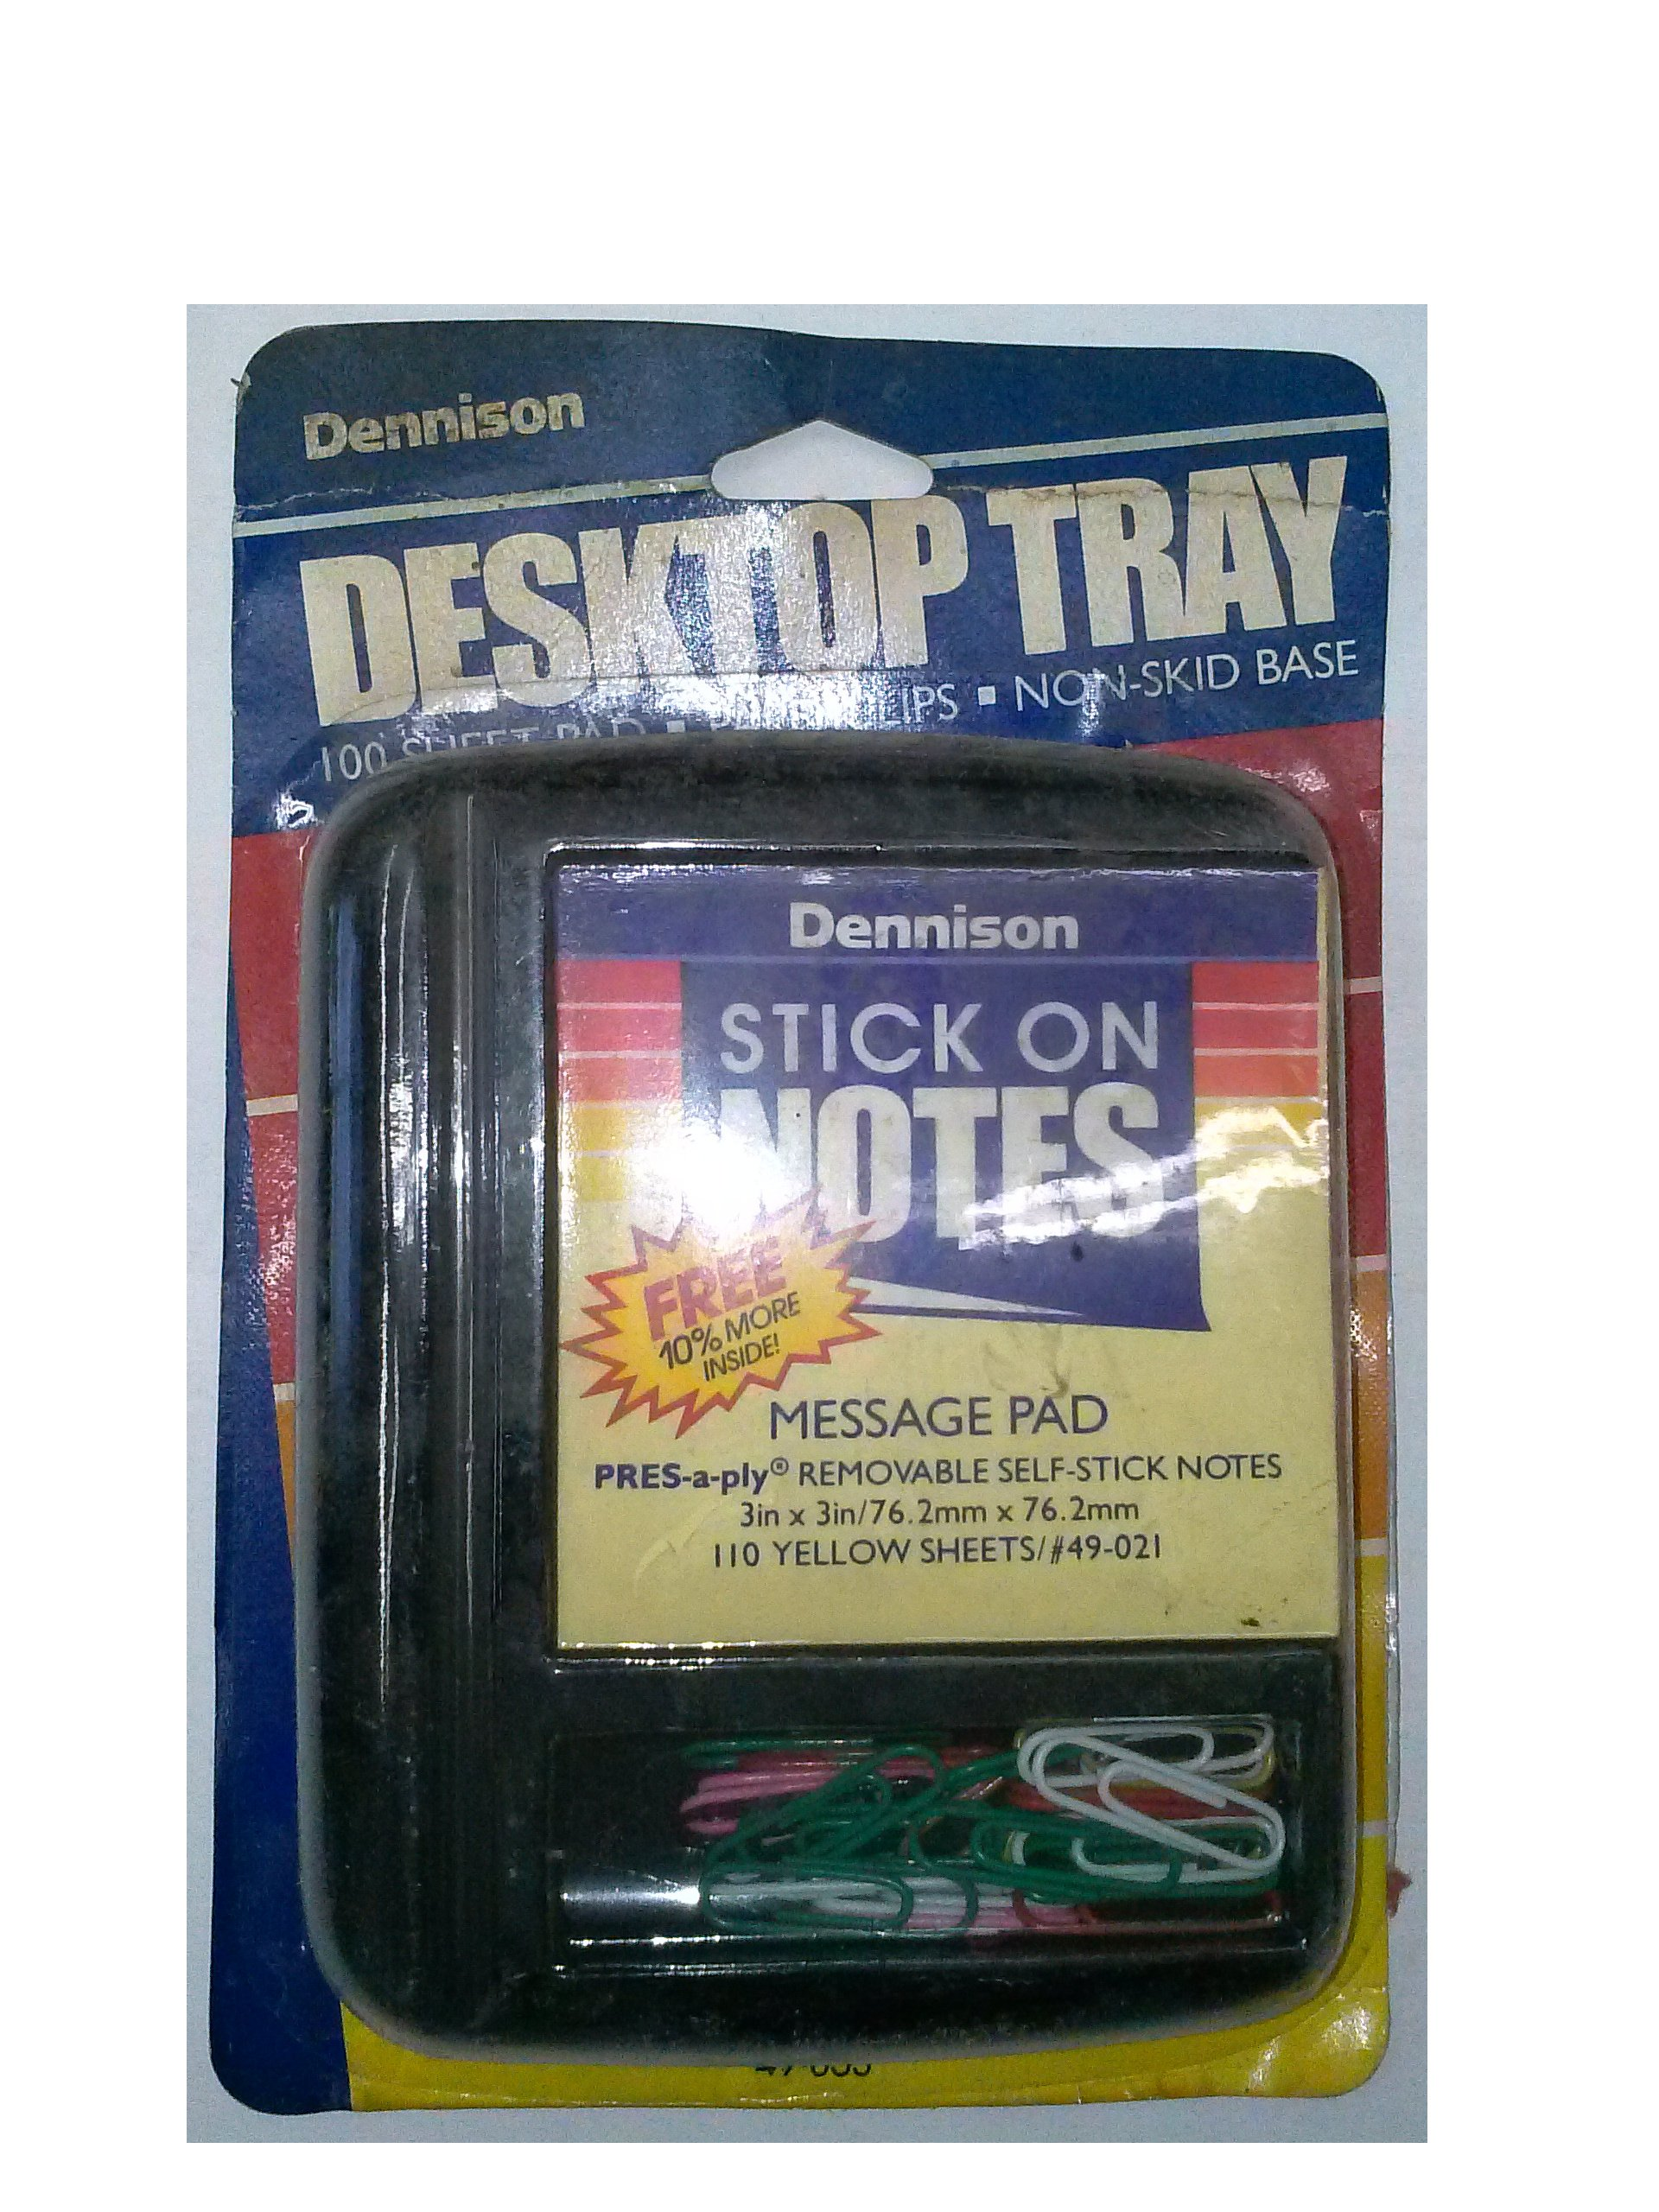 Dennison 49-053 Desktop Tray 3'' x 3'' for Post-Its & Paper Clips by Dennison